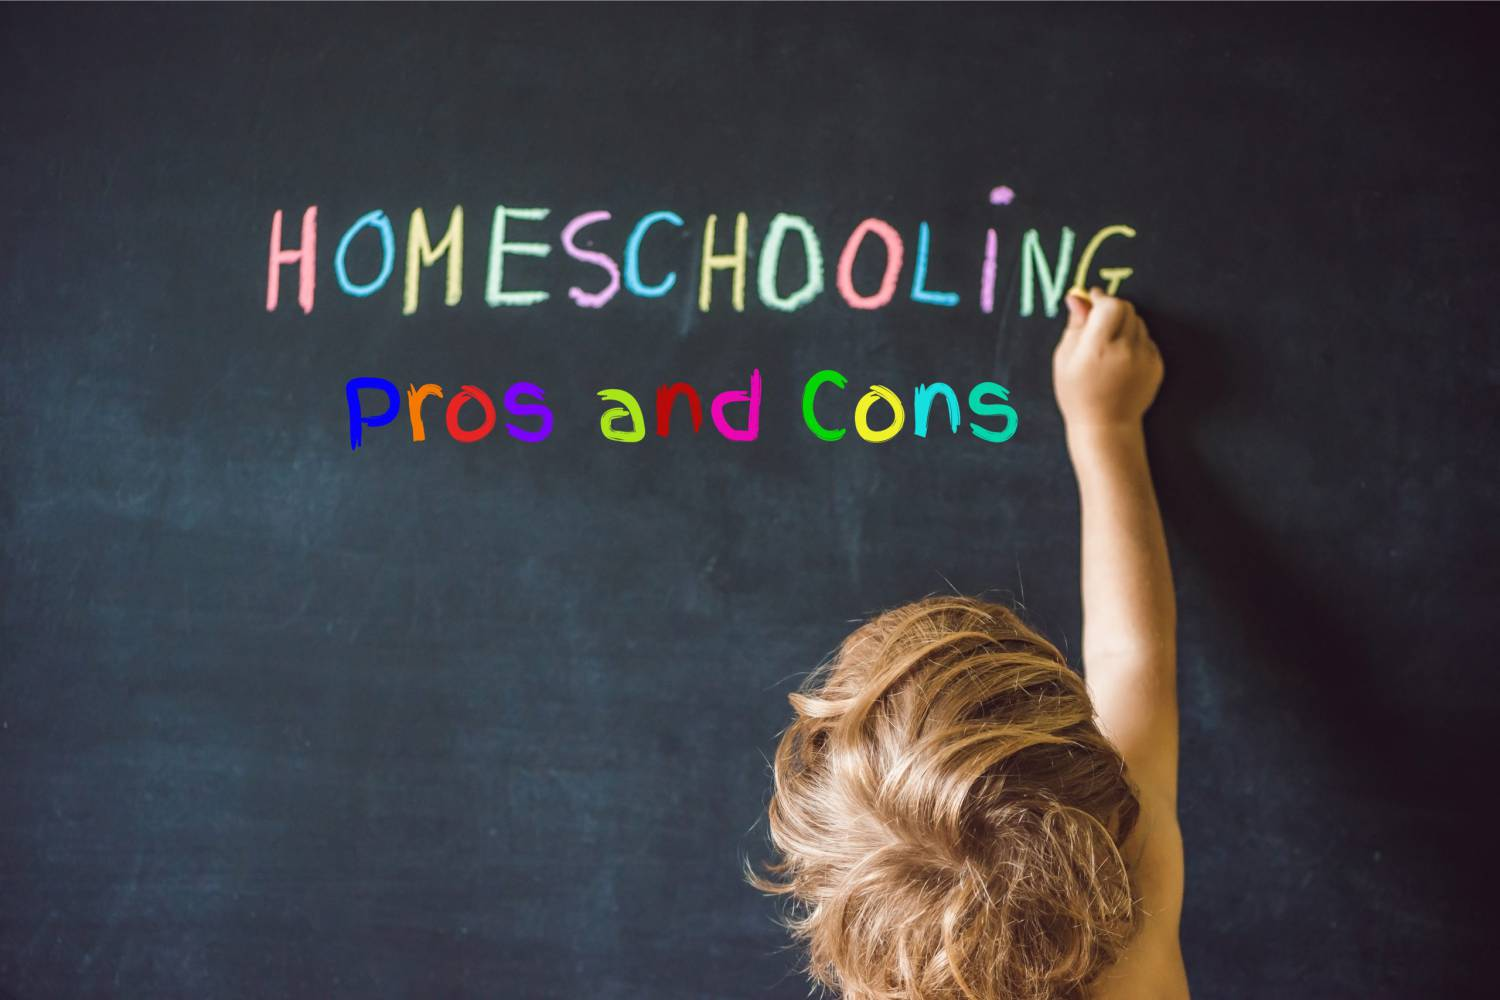 Homeschooling : Pros and Cons